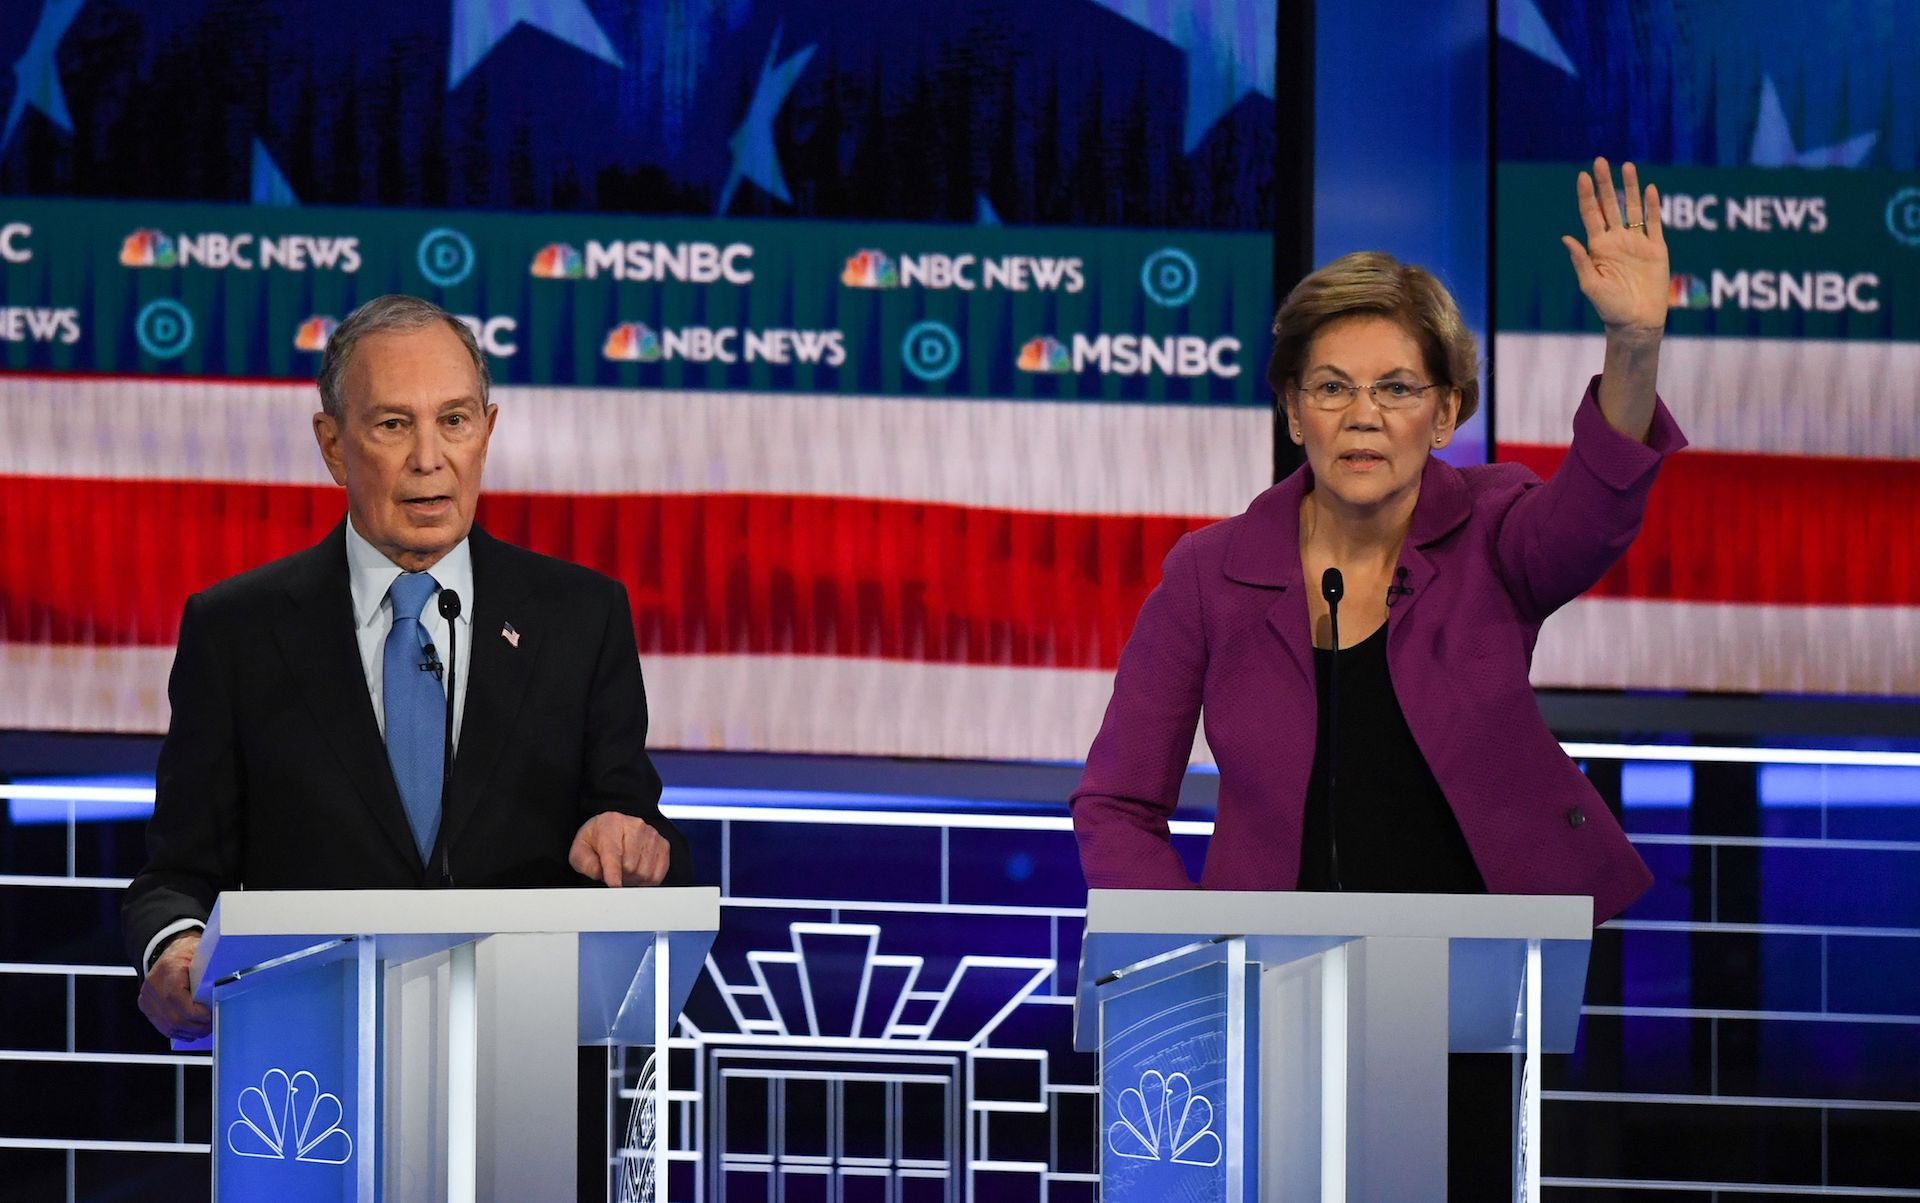 , Bloomberg Got Destroyed in the First 3 Minutes of the Debate, Saubio Making Wealth